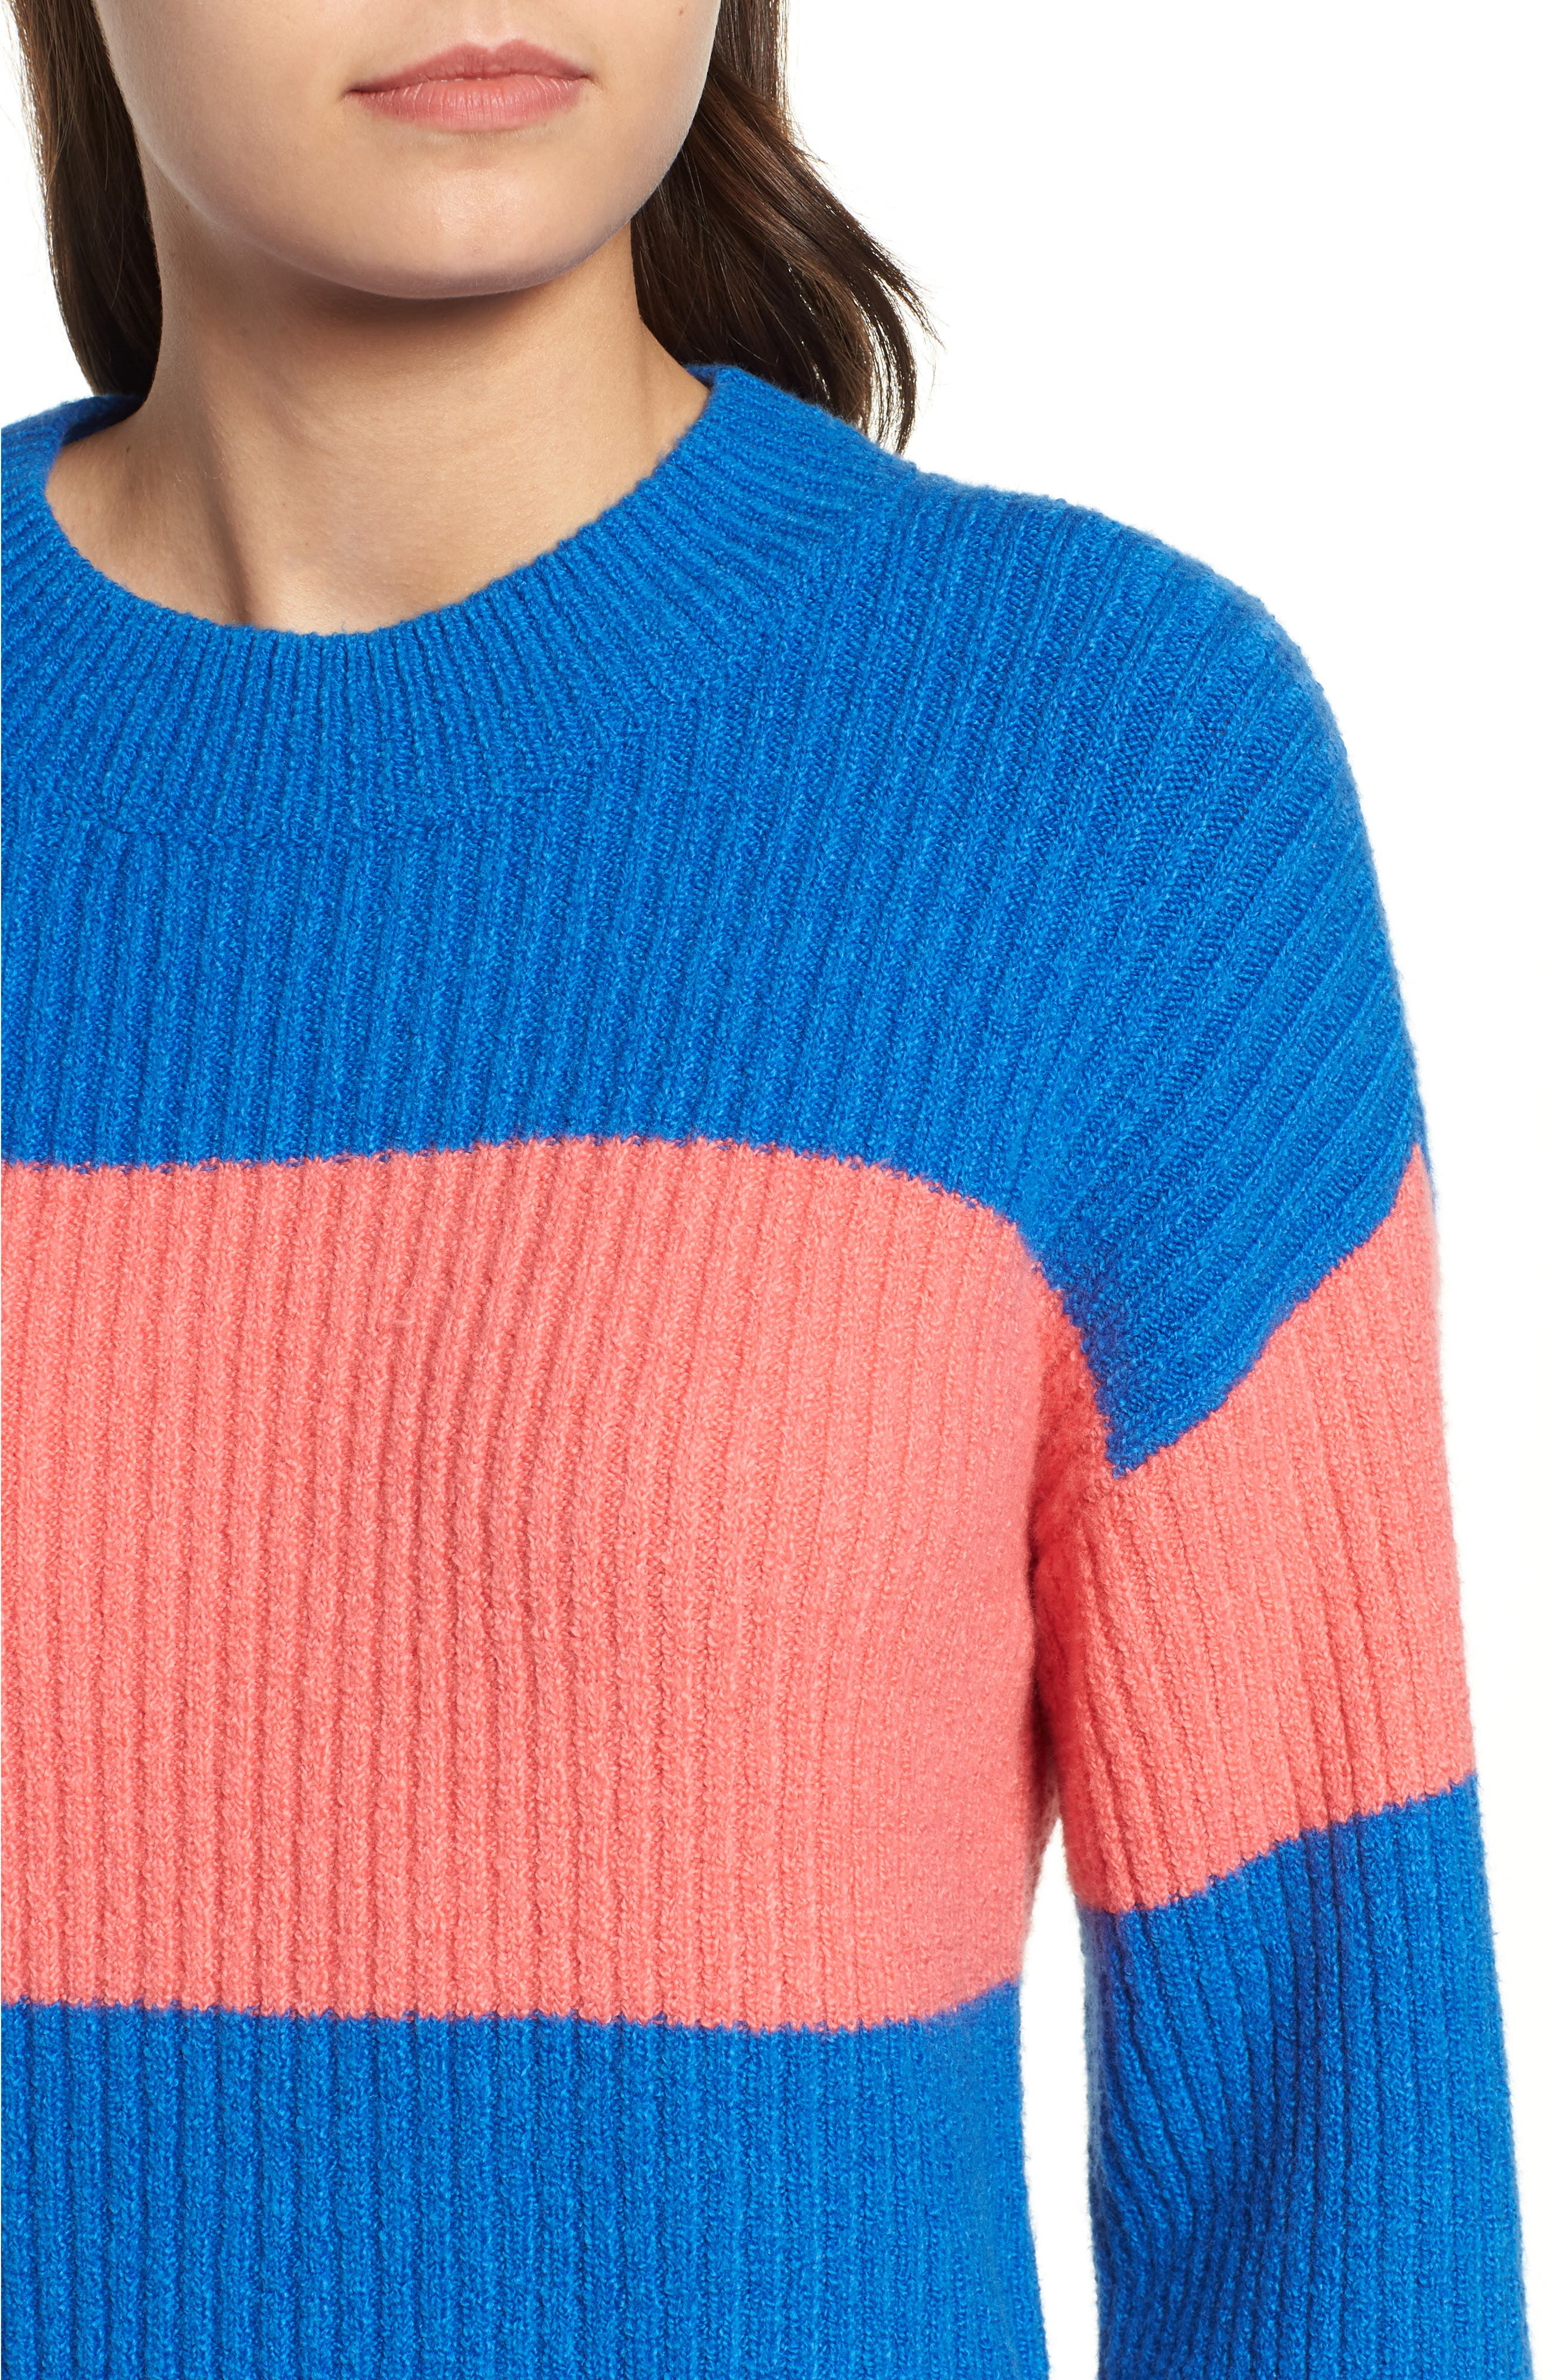 Rugby Stripe Sweater,                             Alternate thumbnail 6, color,                             BLUE BOAT COURTNEY STRIPE